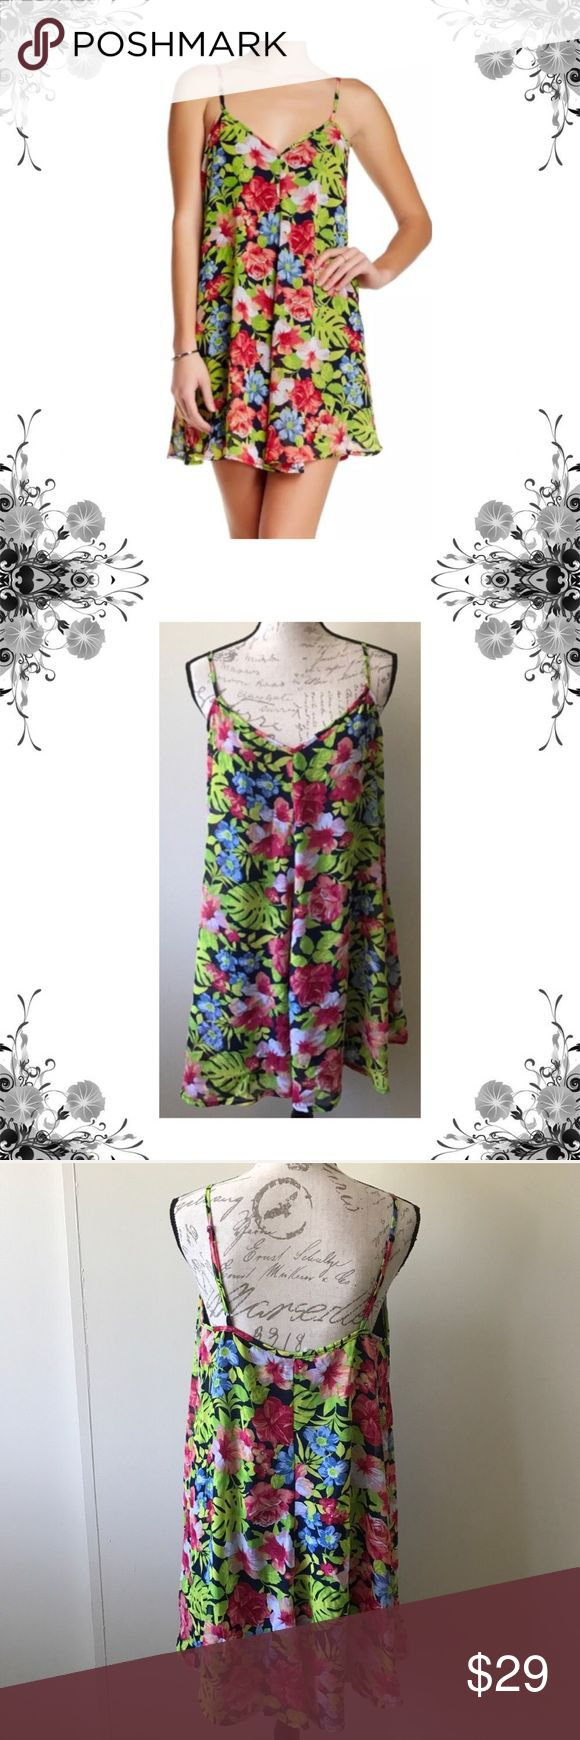 "NWOT Mimi Chica Tropical Floral Print Shift Dress Micro Mini Floral Print Shift Dress. 100% Polyester. Approx 34"" in length. V-neck. Adjustable spaghetti straps. Allover print. Lined. Bundle for discounts! Thank you for shopping my closet! Bin 12/33 Mimi Chica Dresses Mini"